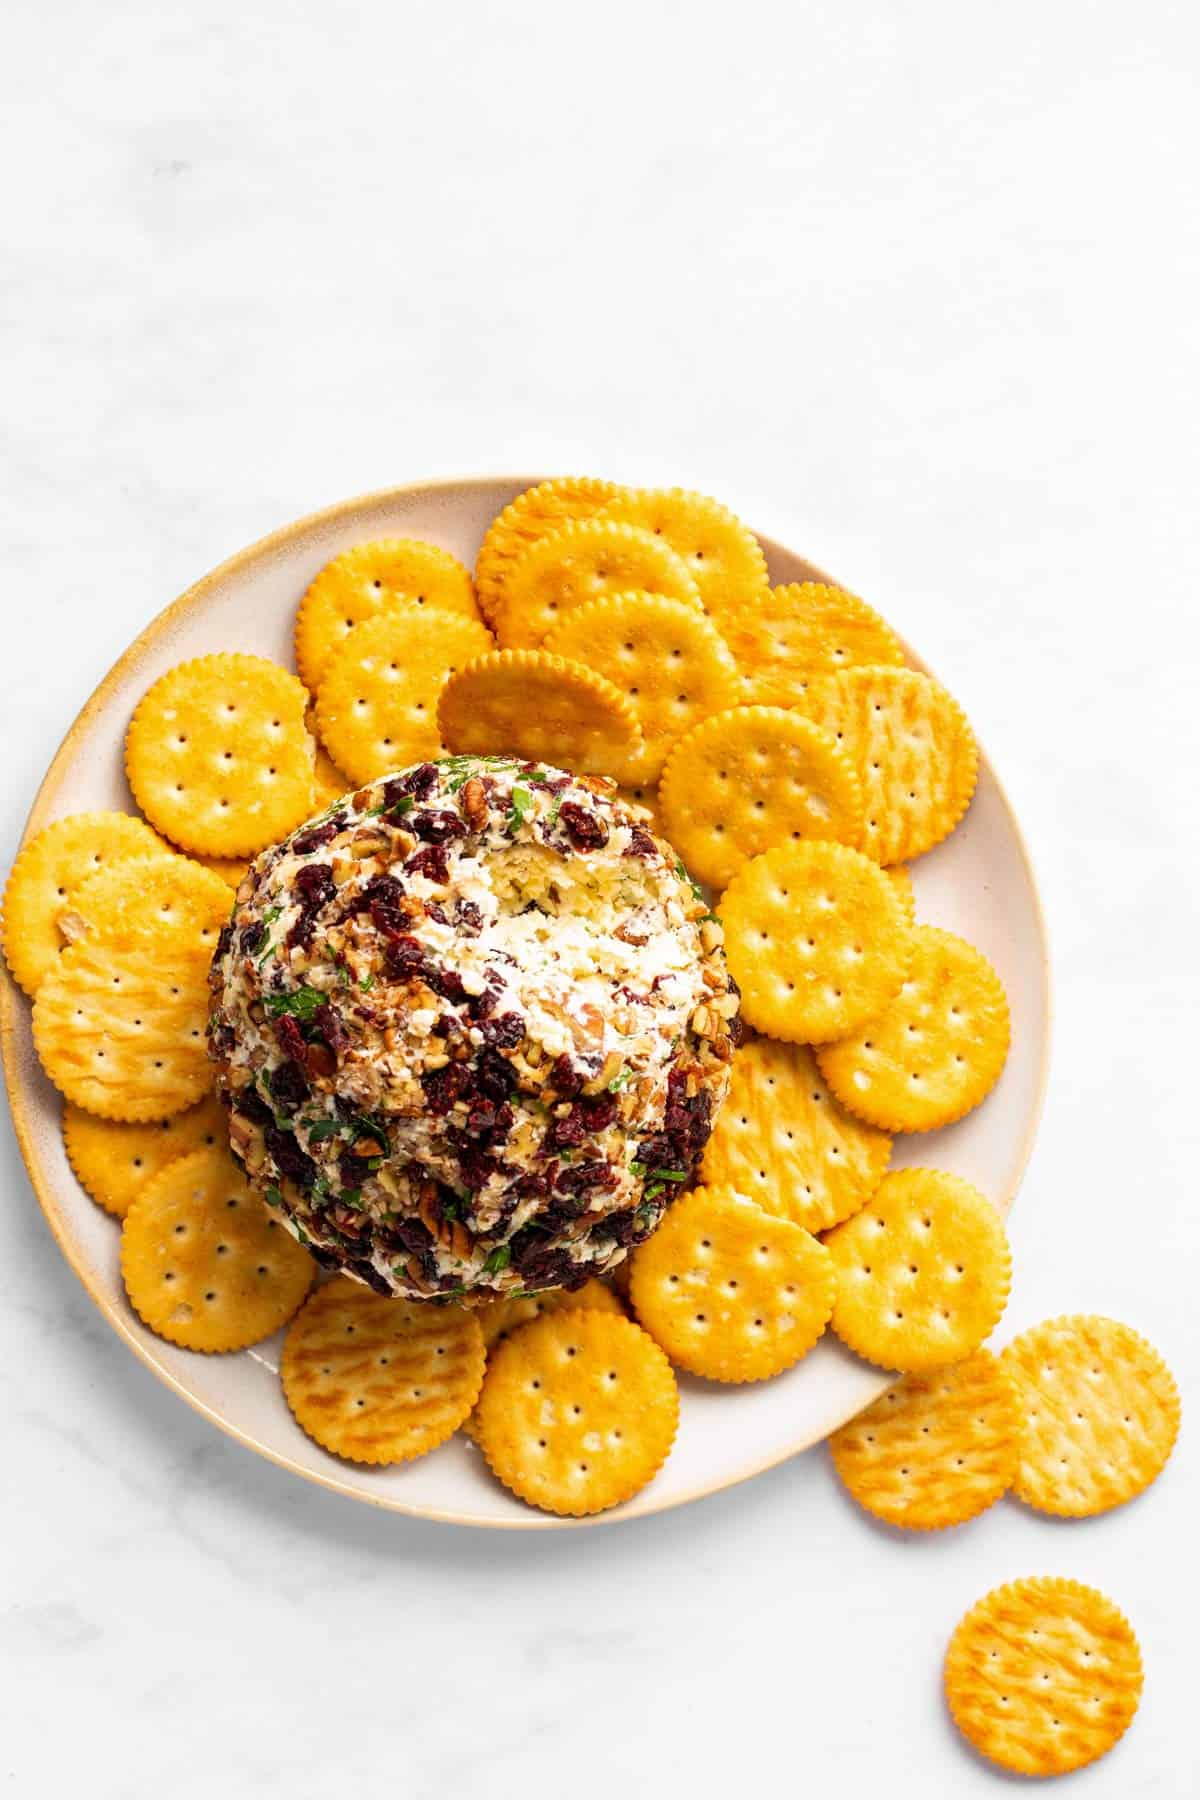 overhead view of platter with crackers and cheeseball